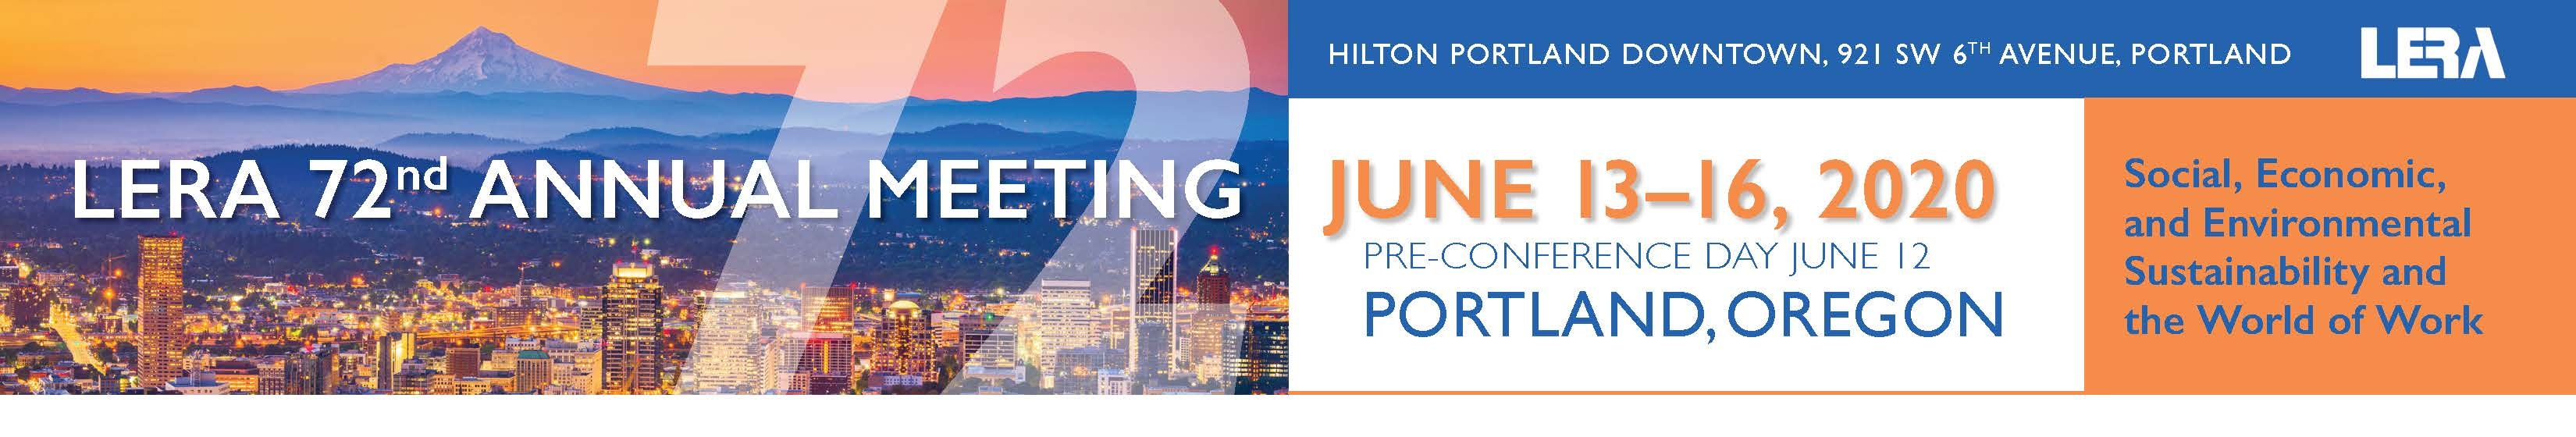 Portland Events June 2020.Lera 72nd Am Portland 2020